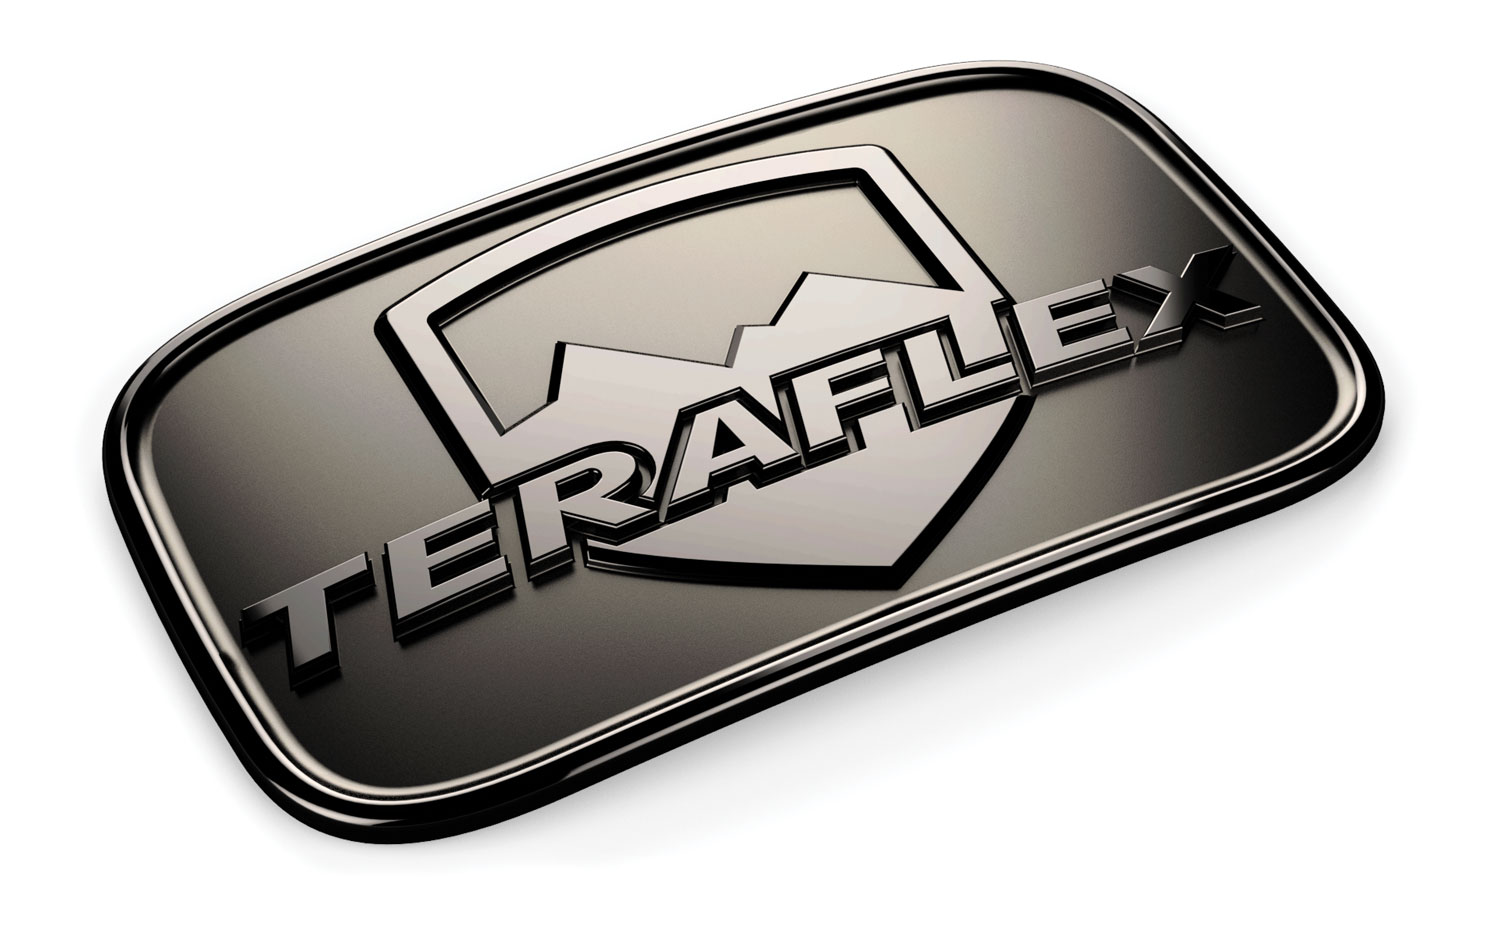 Teraflex License Plate Delete Badge - JK